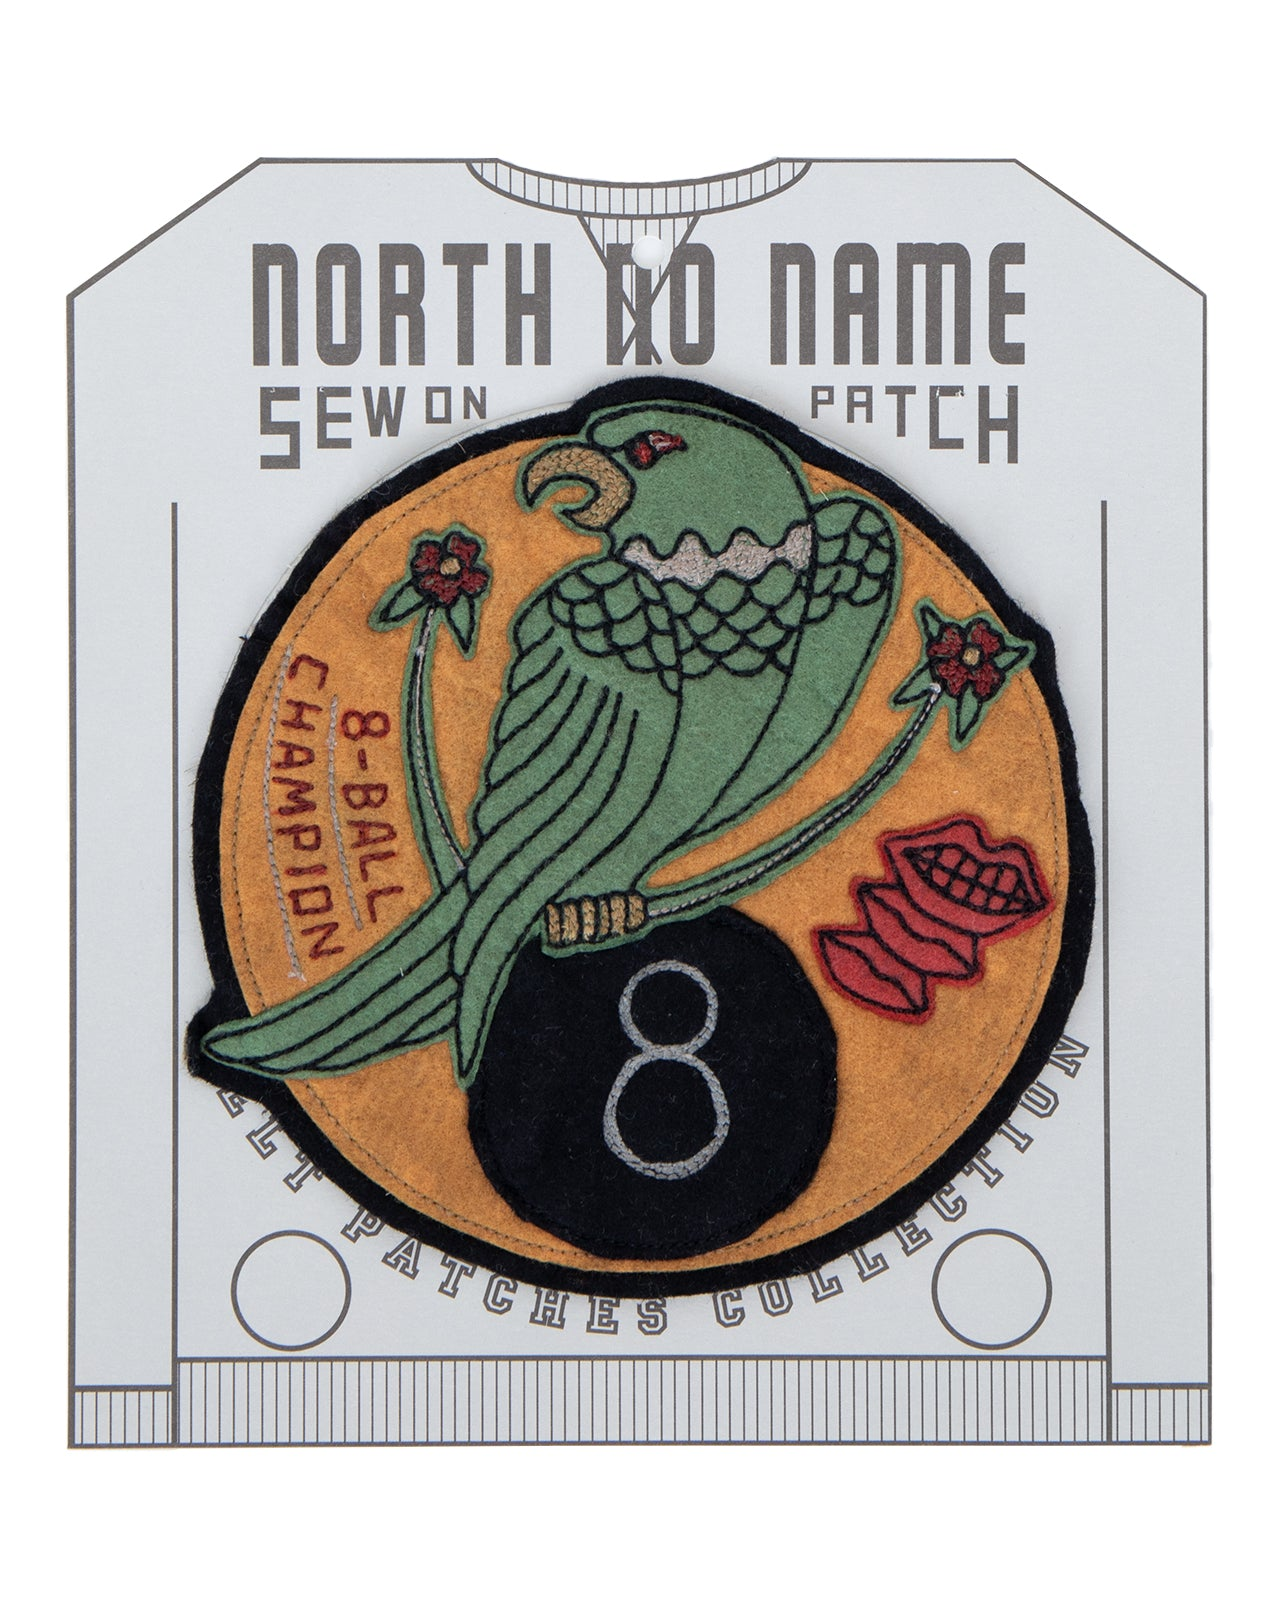 North No Name, Felt Patch, 8-Ball Champion